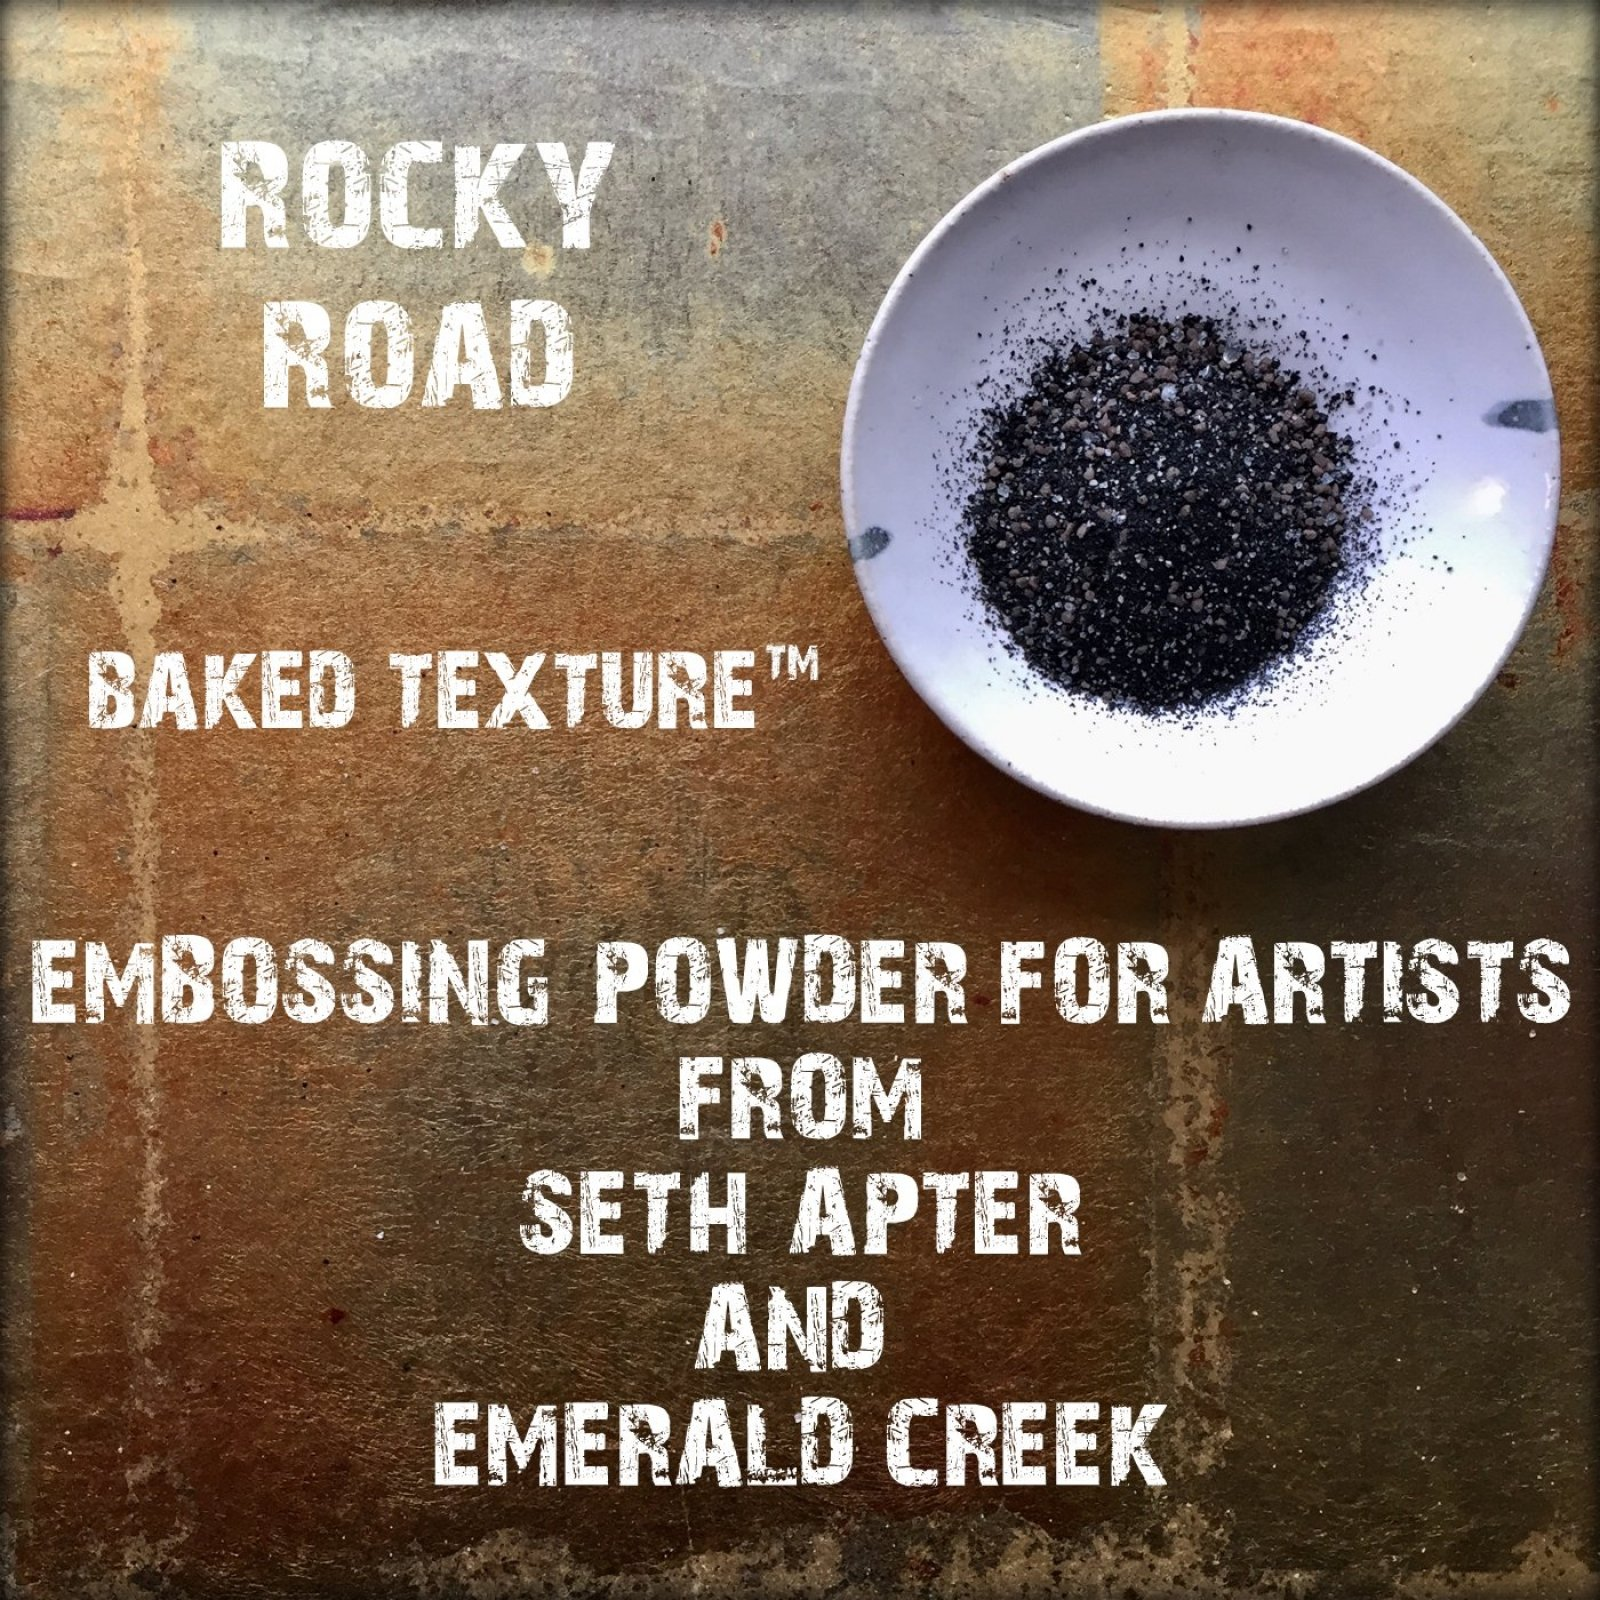 ROCKY ROAD 17G - BAKED TEXTURE EMBOSSING POWDER